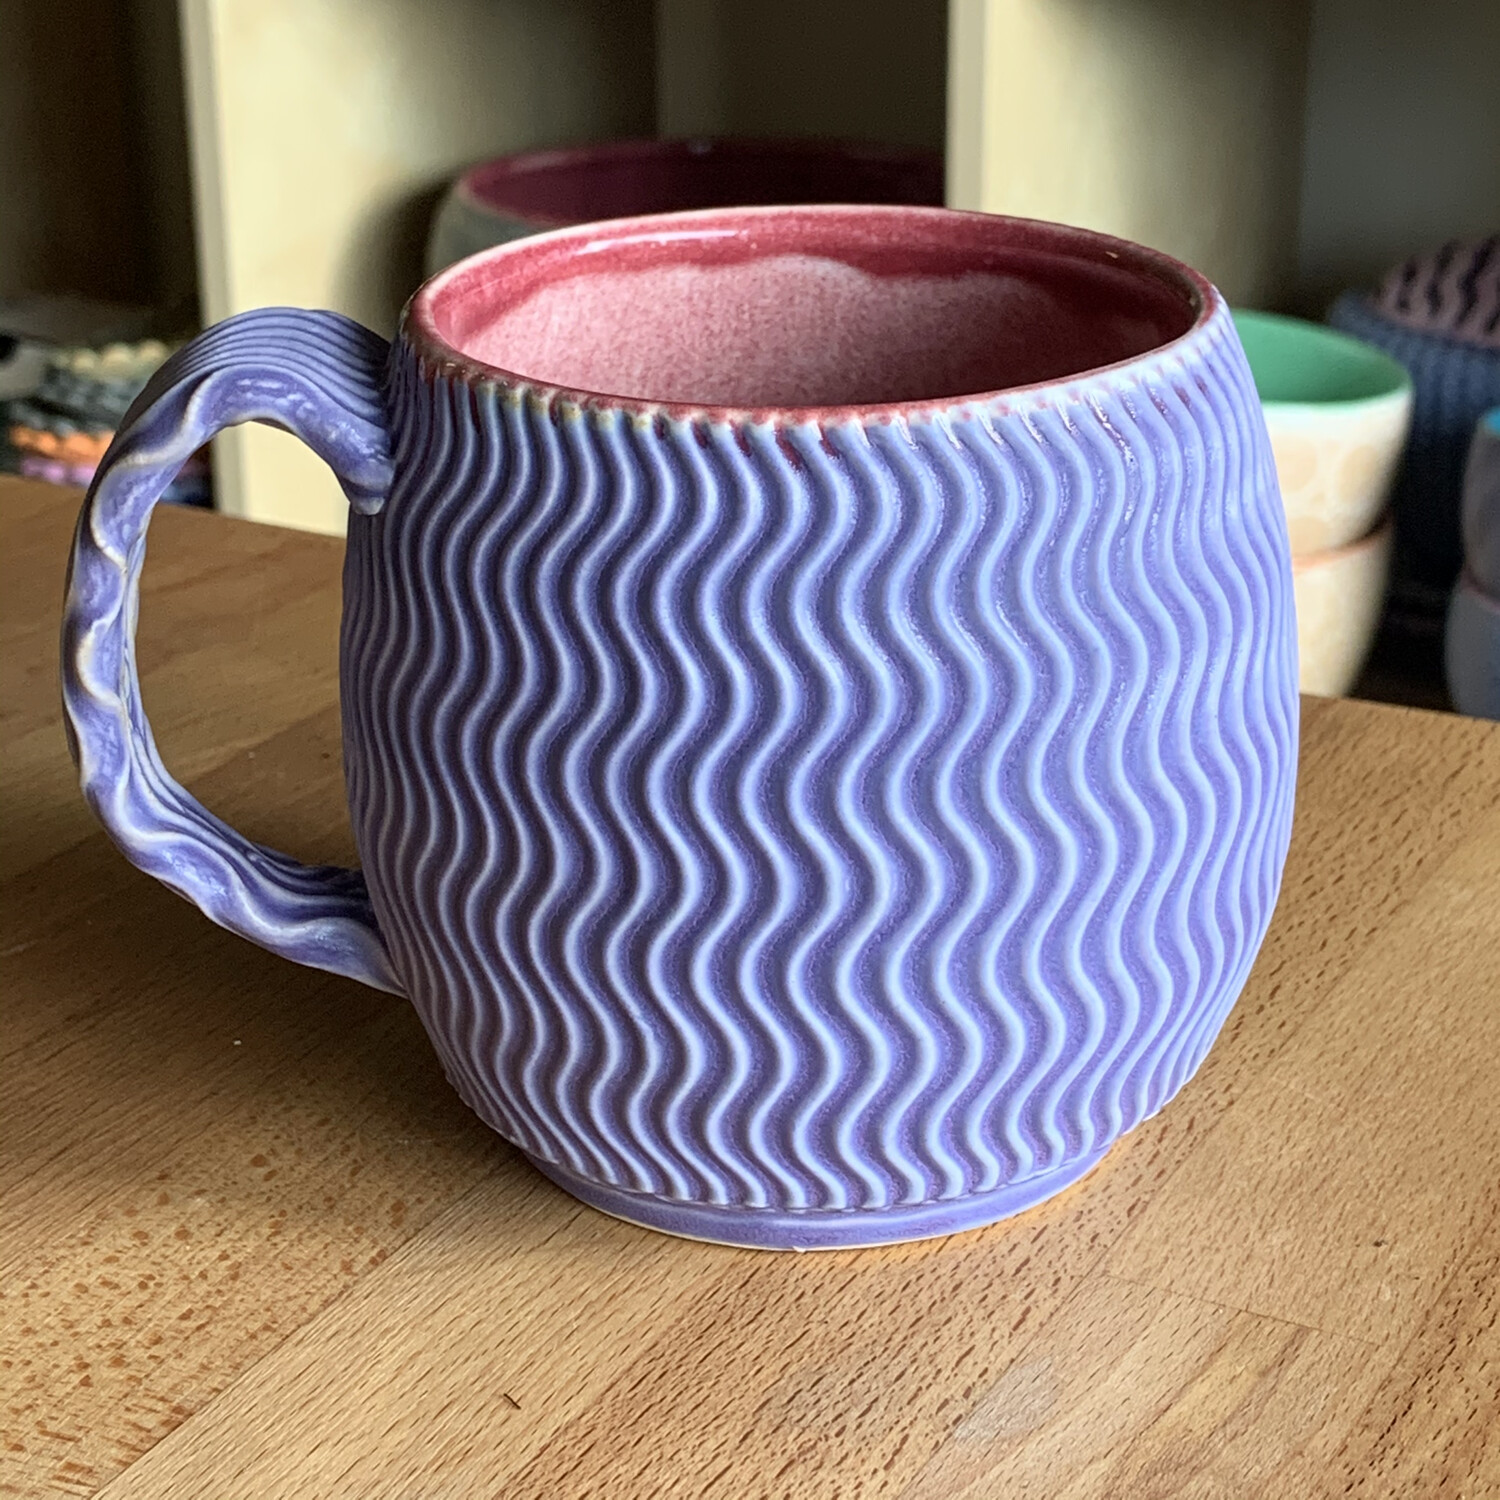 Oregon Cup in crimson & purple